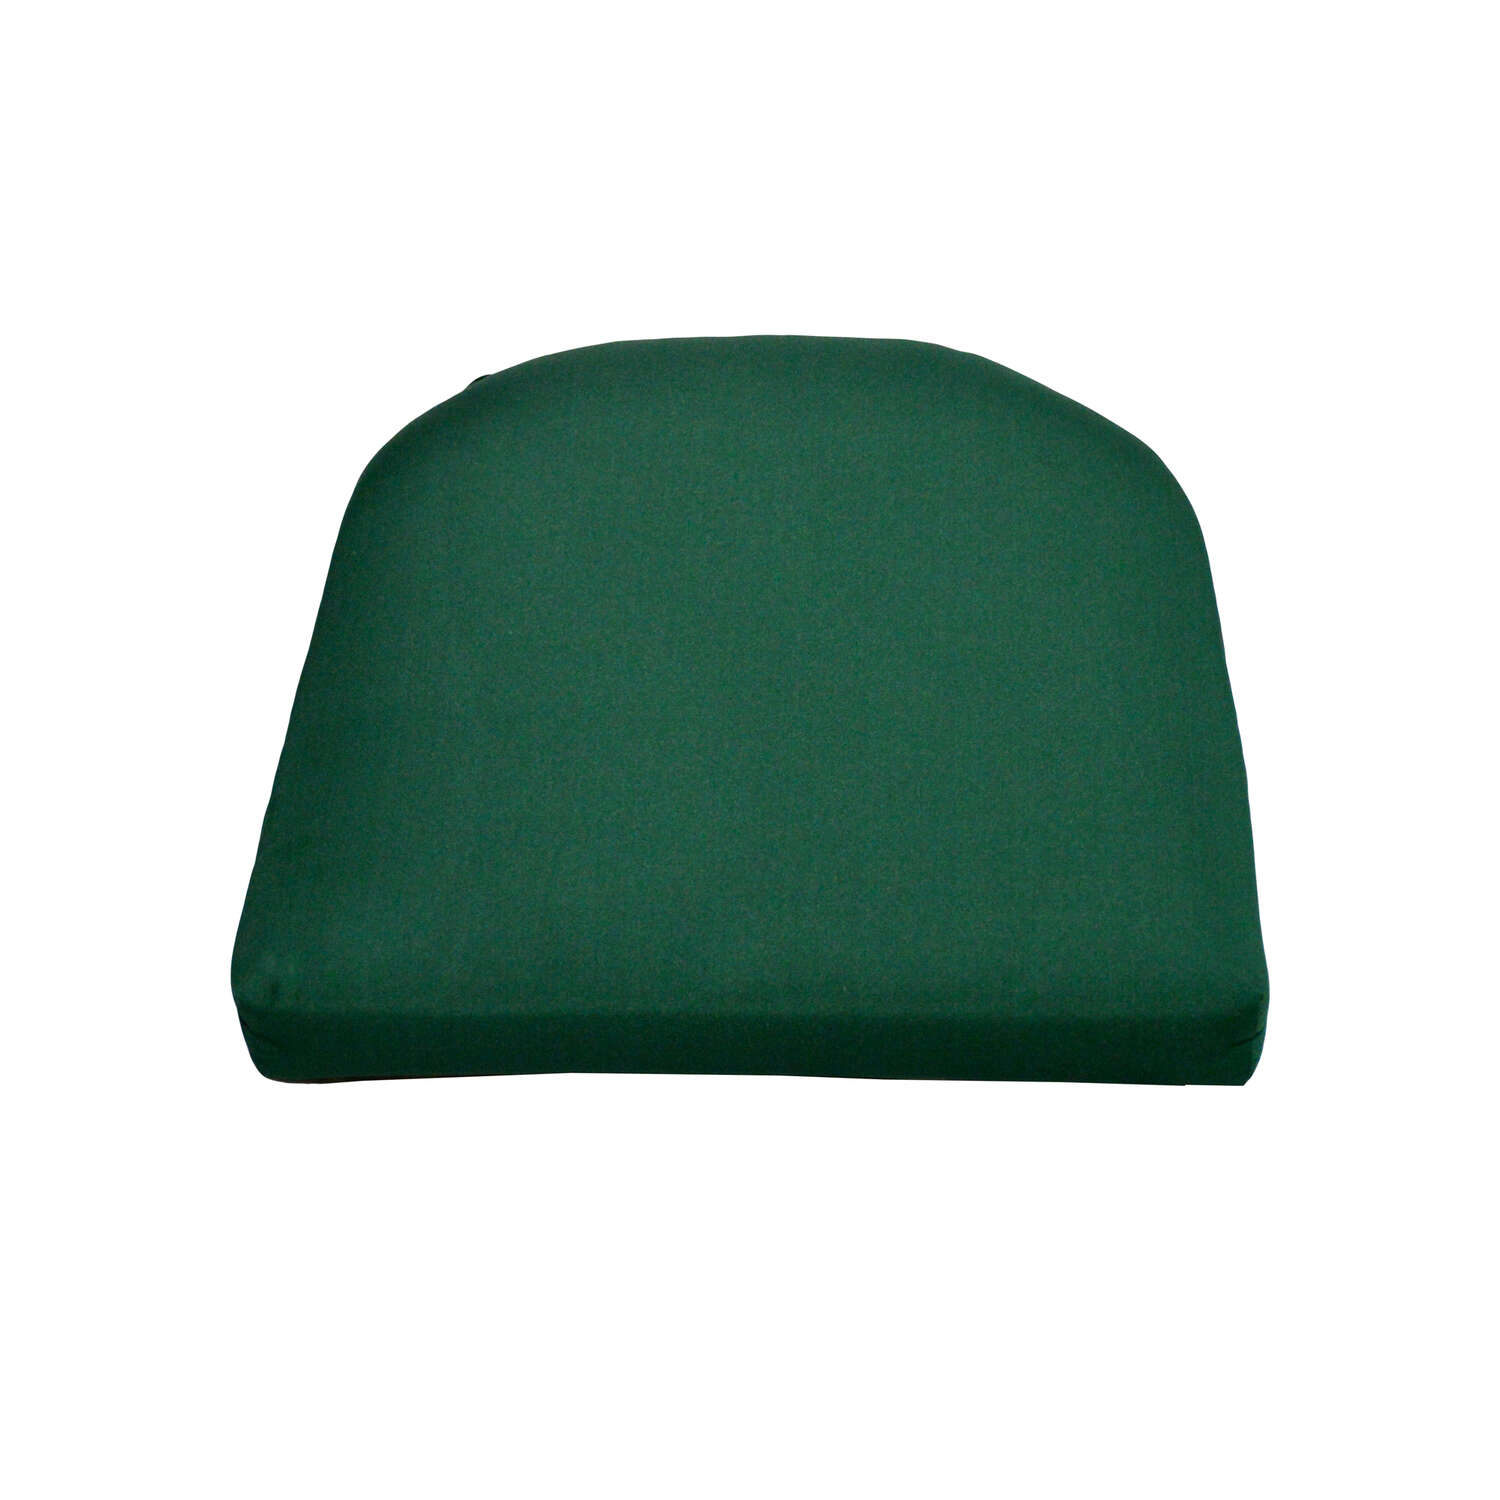 Casual Cushion  Green  Seating Cushion  18 in. 18 in. Polyester  2.5 in.